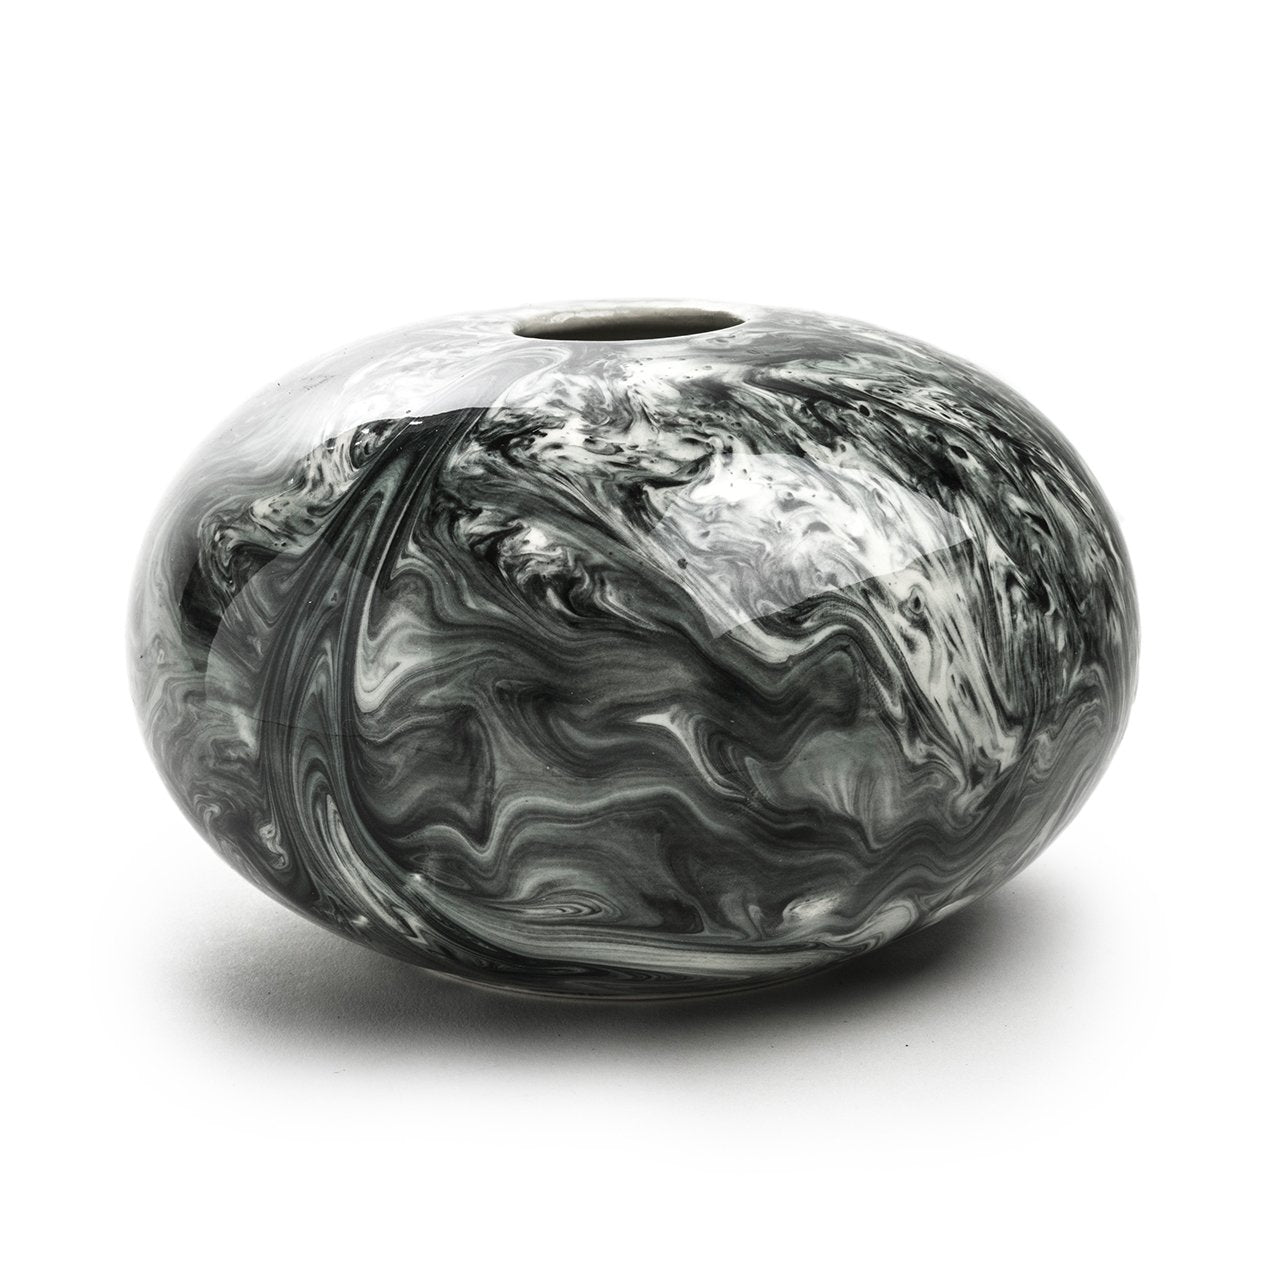 SLICK ADDITIONS SPHERICAL VASE